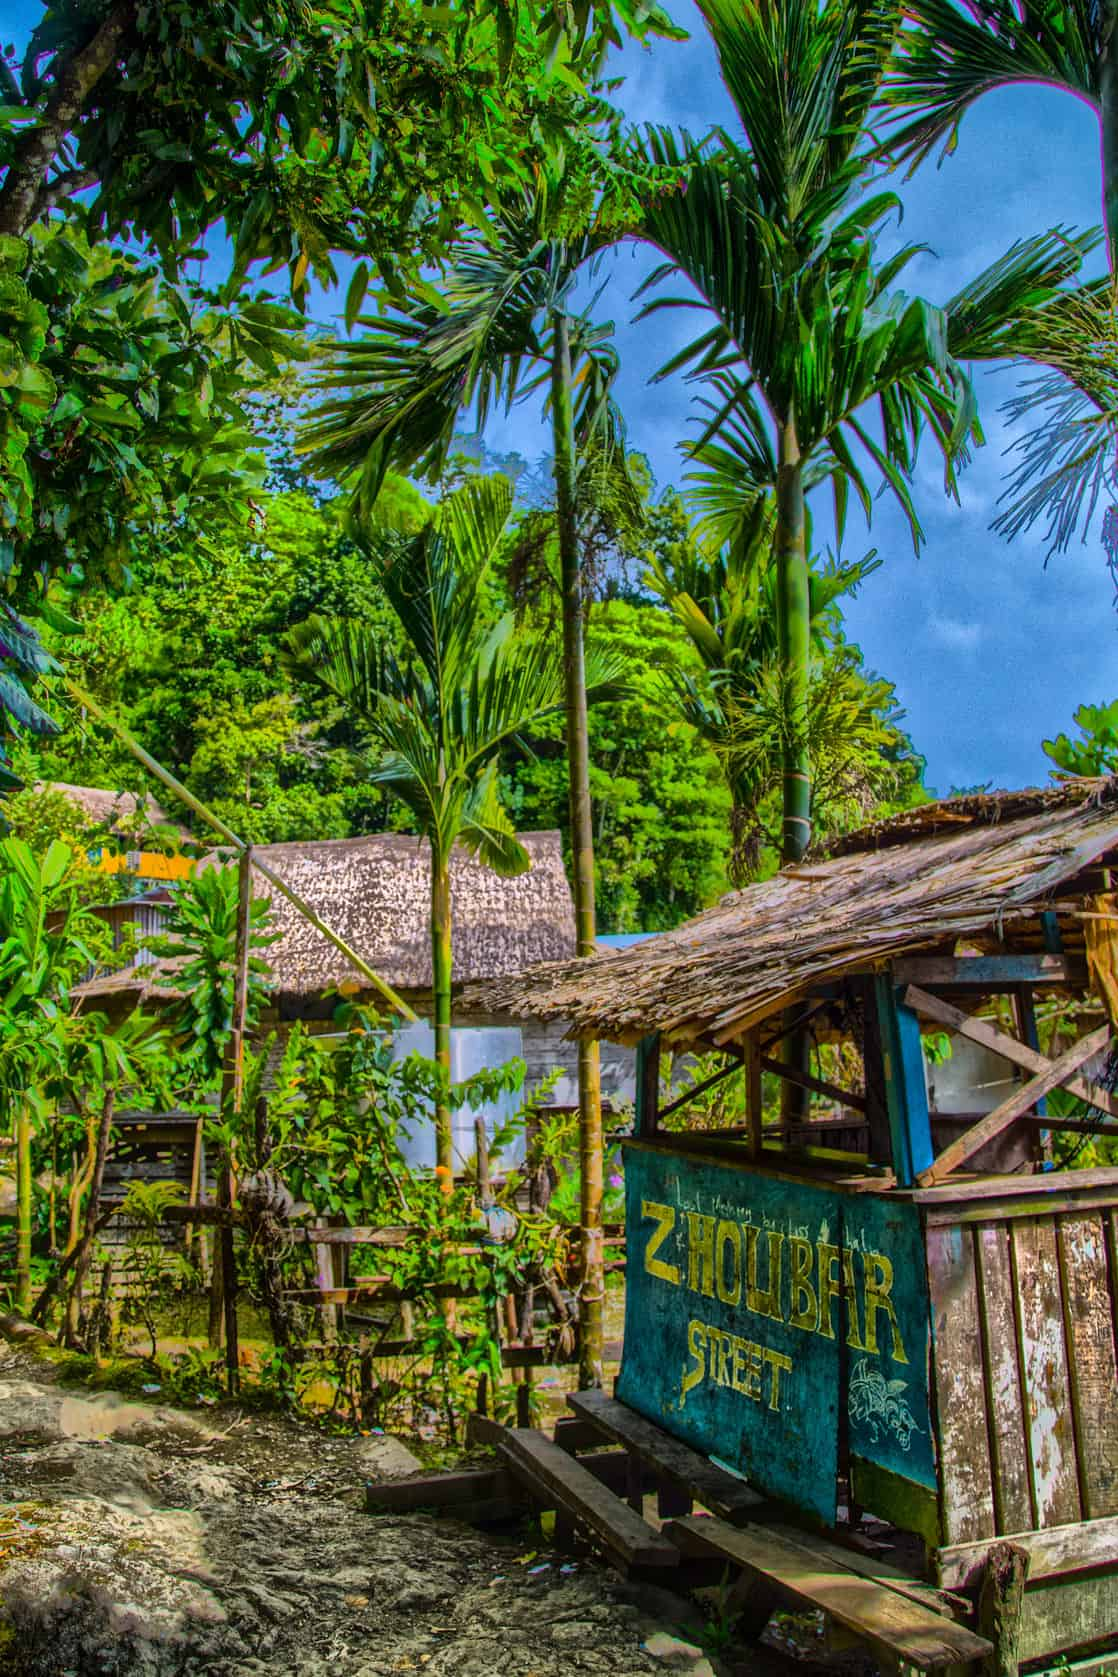 Small shack in a community on an island in the south pacific.